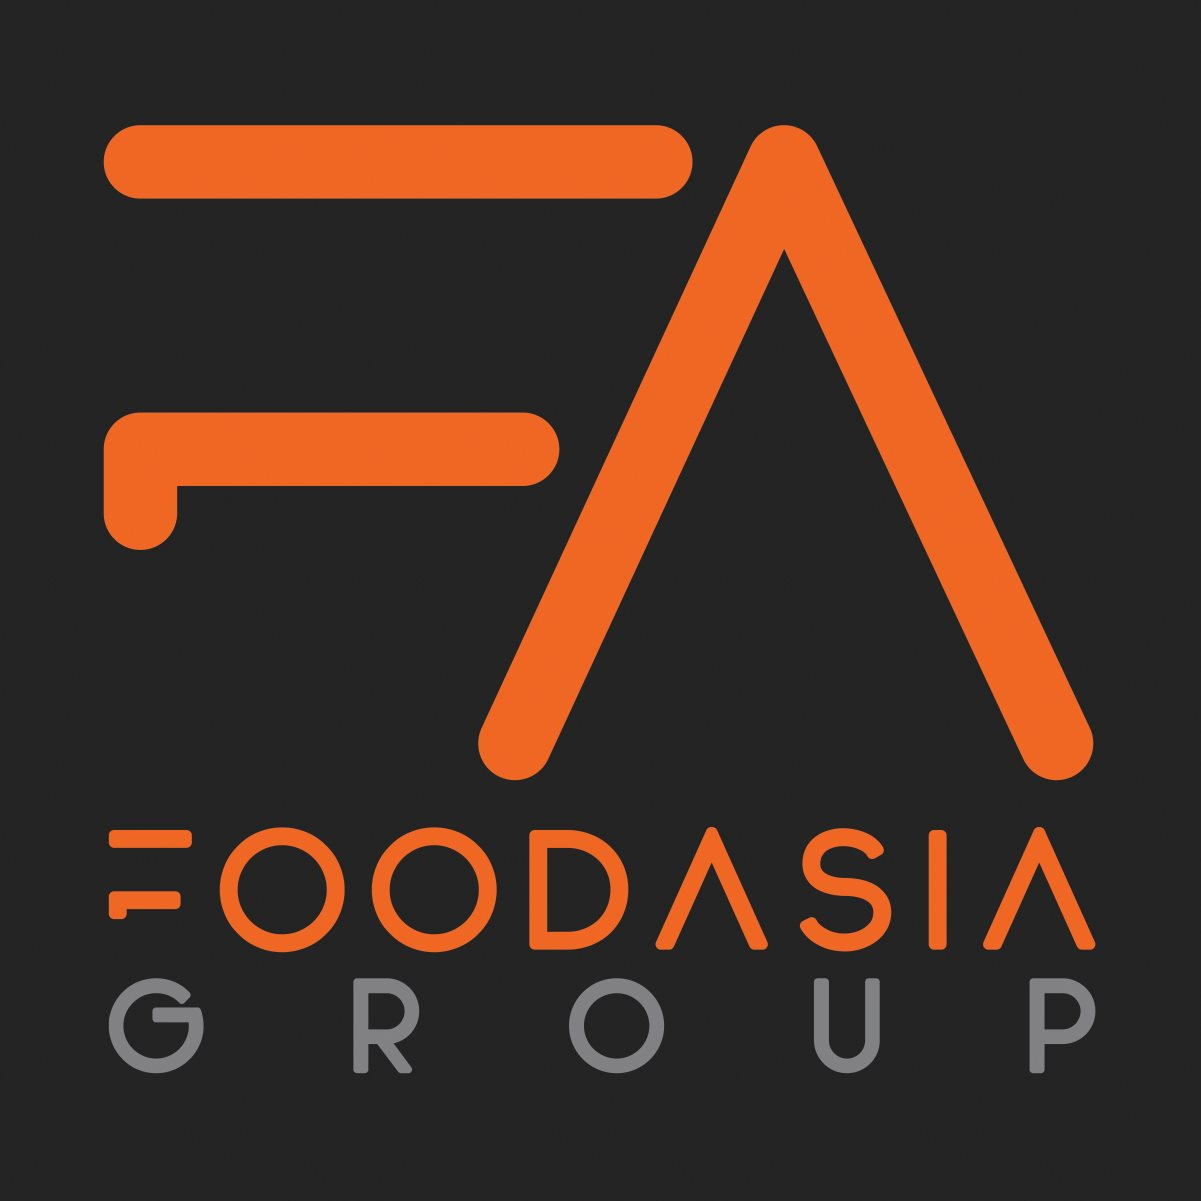 Philippine Foodasia Corporation